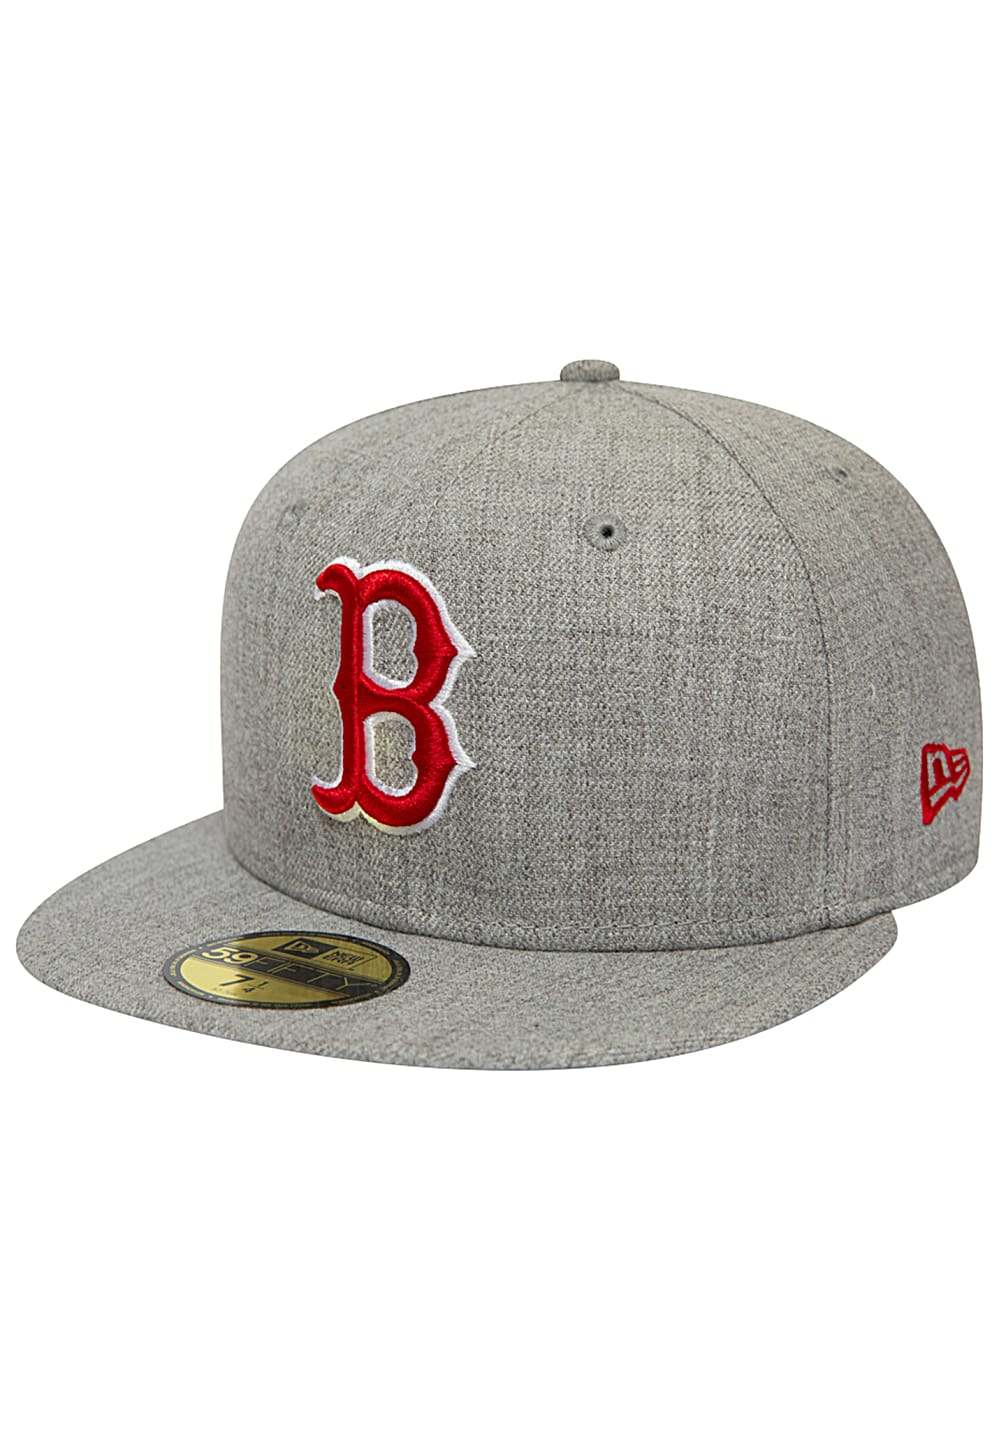 NEW Era 59Fifty Bosten Red Soxs Fitted Cap - Grau | Accessoires > Caps > Fitted Caps | new era